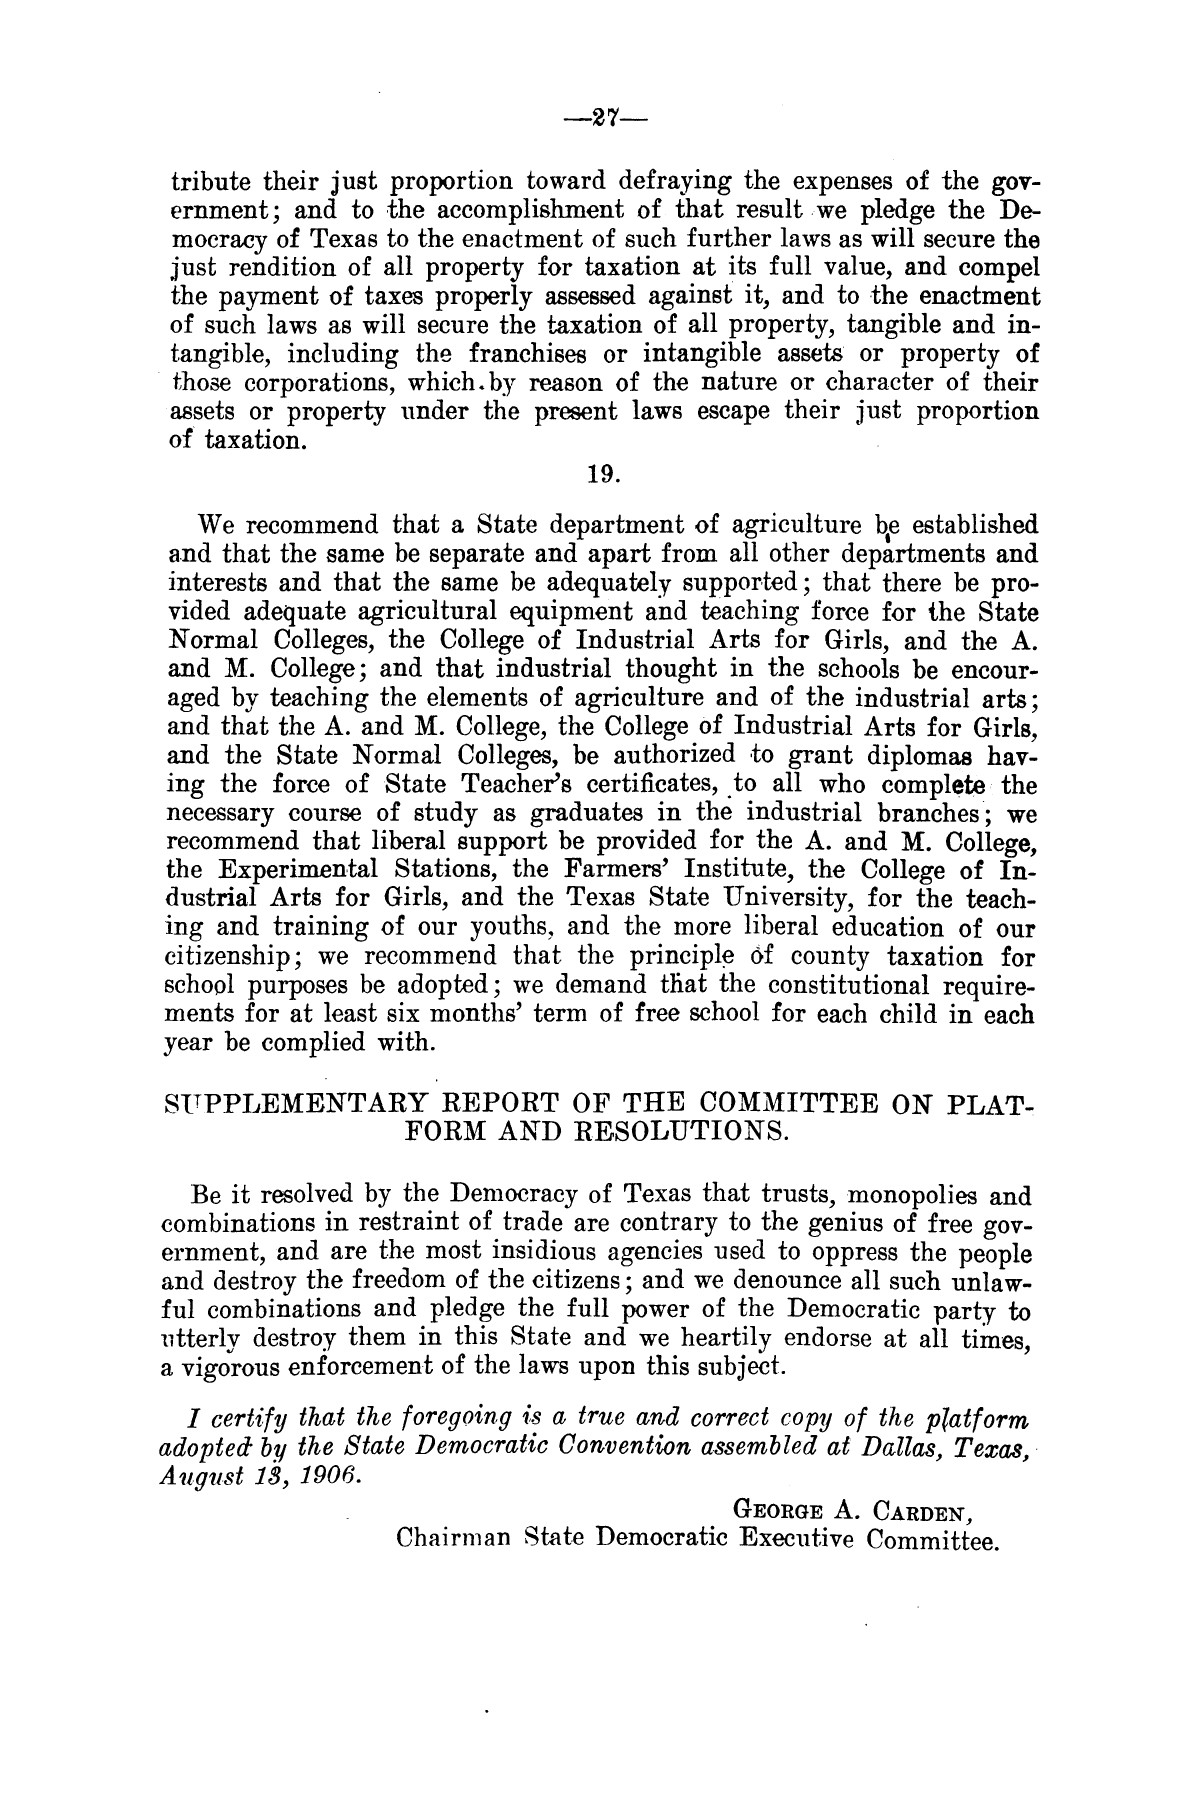 Message of Governor T.M. Campbell to the thirtieth legislature of Texas, to which is appended the State Democratic Platform adopted at Dallas, Texas, August 13, 1906.                                                                                                      [Sequence #]: 27 of 27